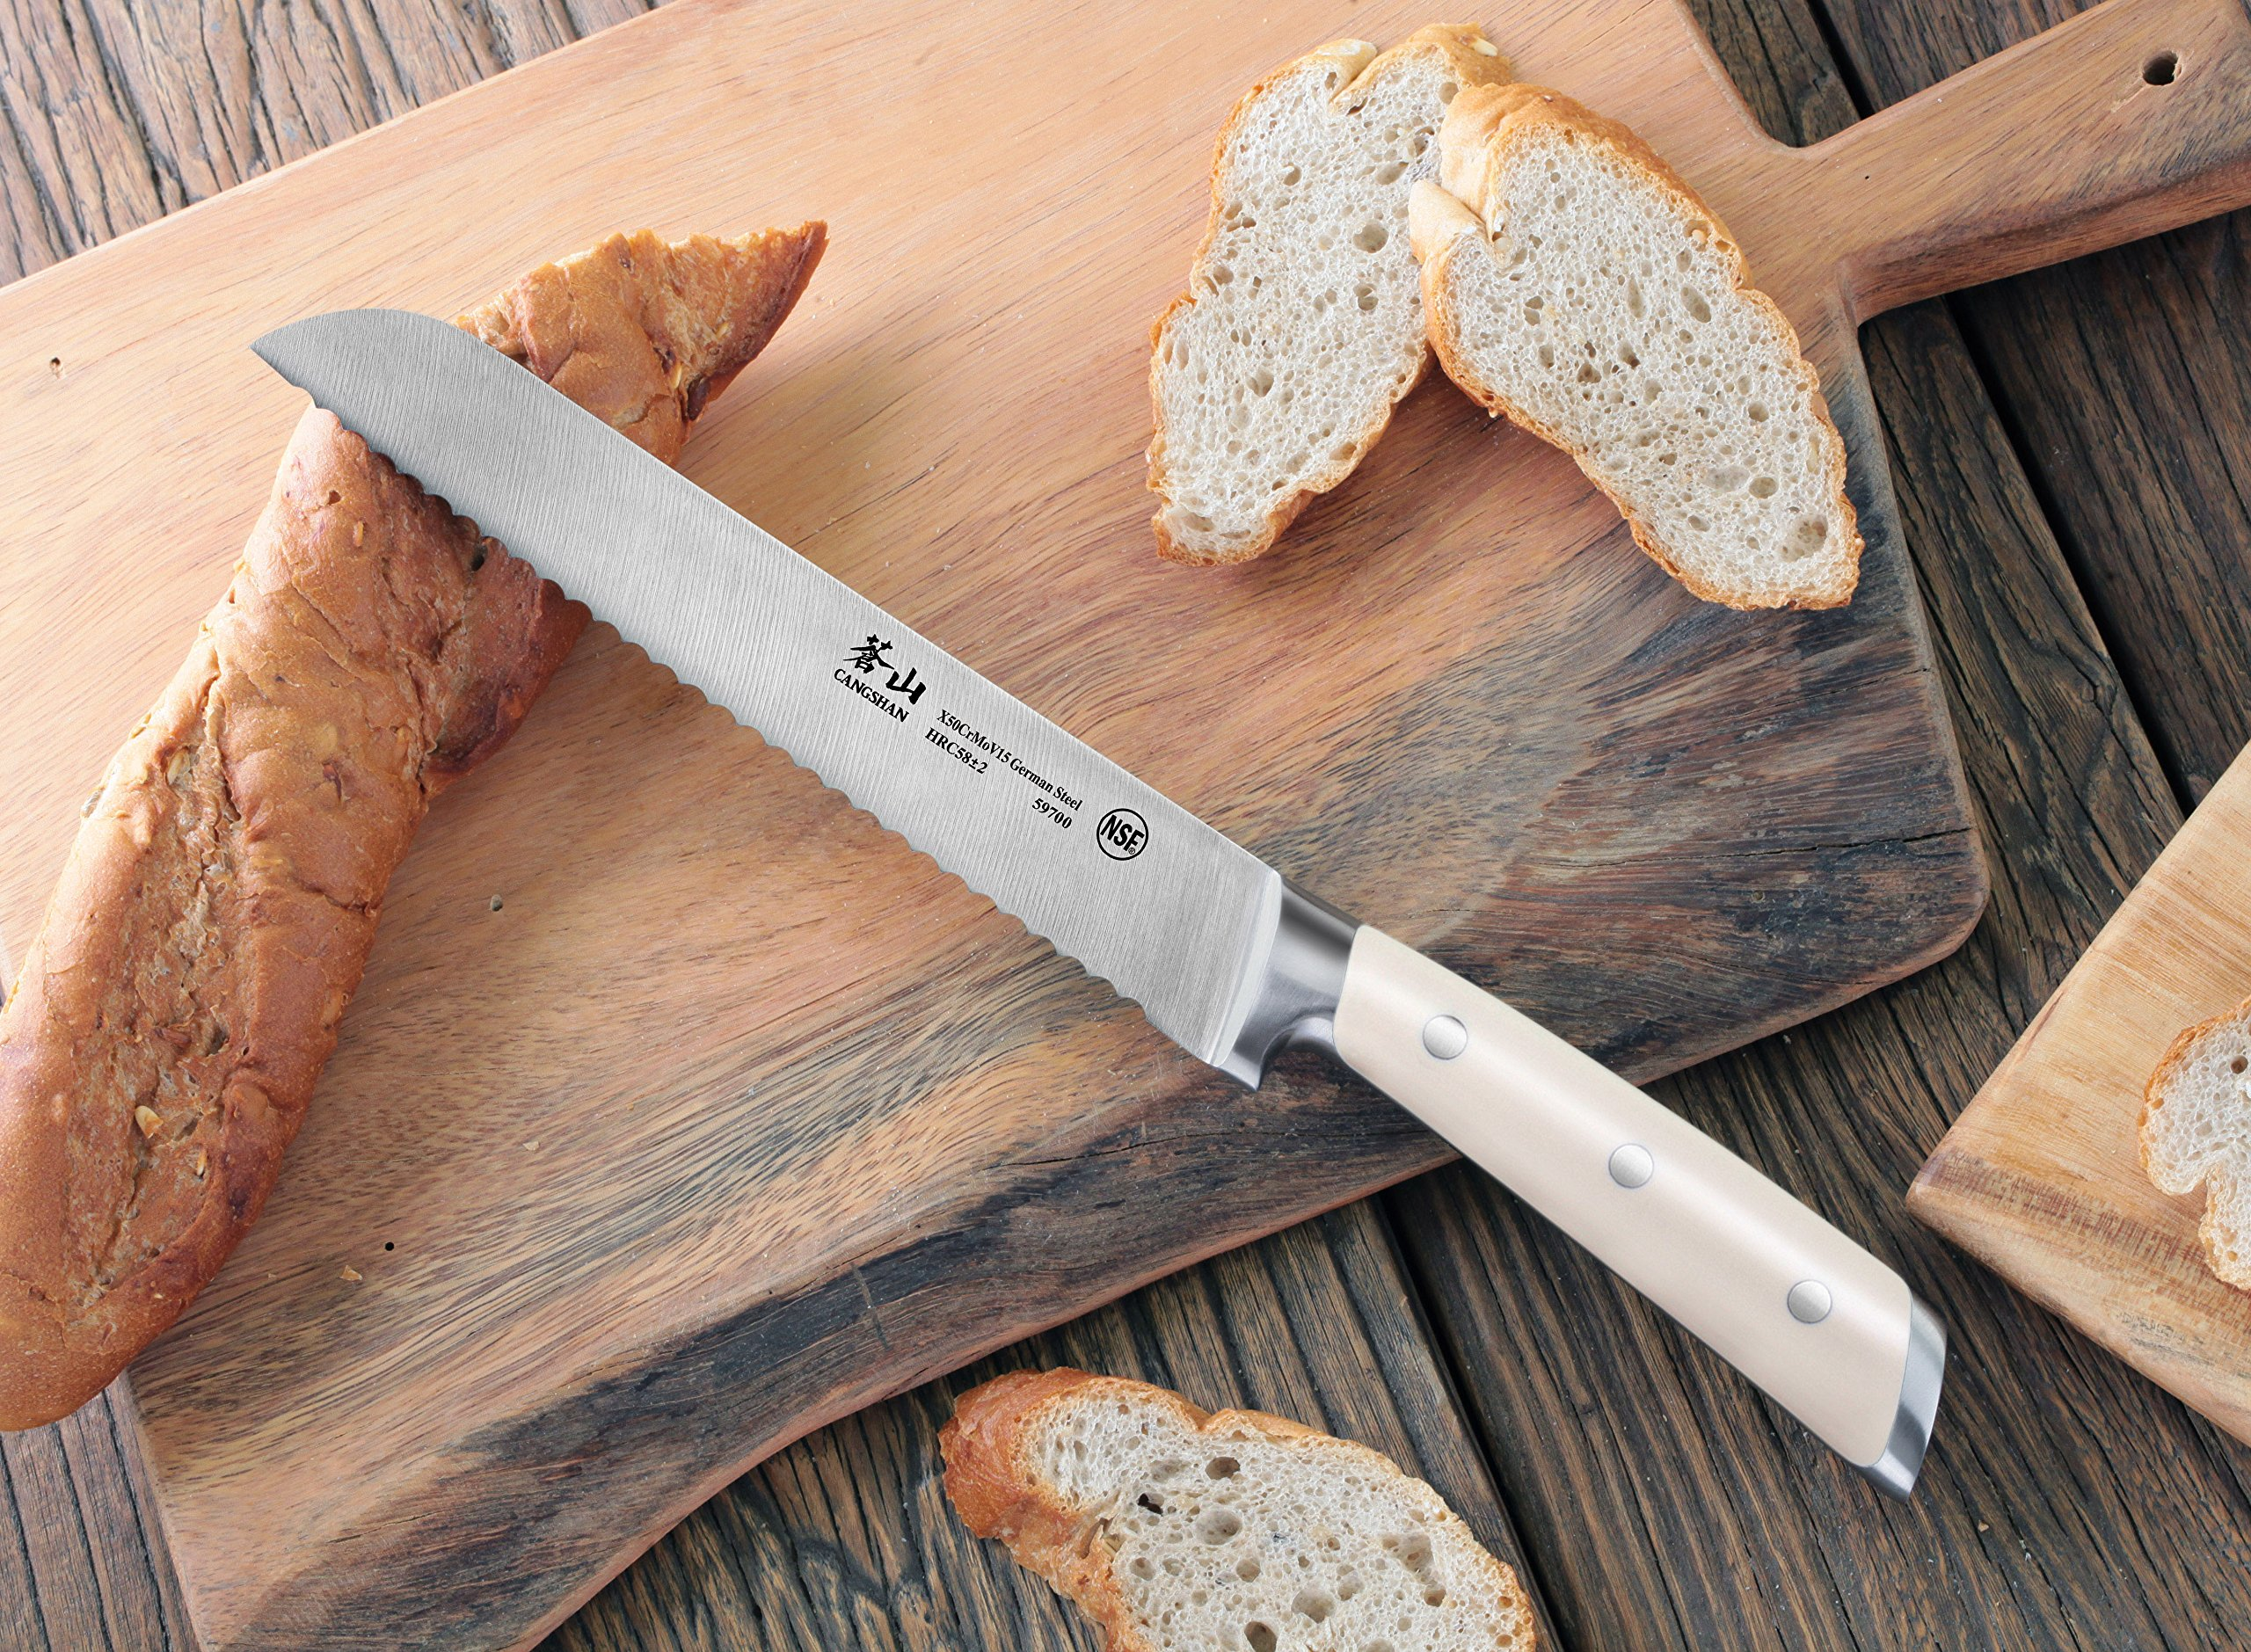 Cangshan S1 Series 59700 German Steel Forged Bread Knife, 8-Inch 7 Patent Pending Design knives that focuses on ergonomics handle with unique creme color Well balanced 5.5-inch handle and 8 blade X50Cr15MoV German Steel with HRC 58 +/- 2 on the Rockwell Hardness Scale